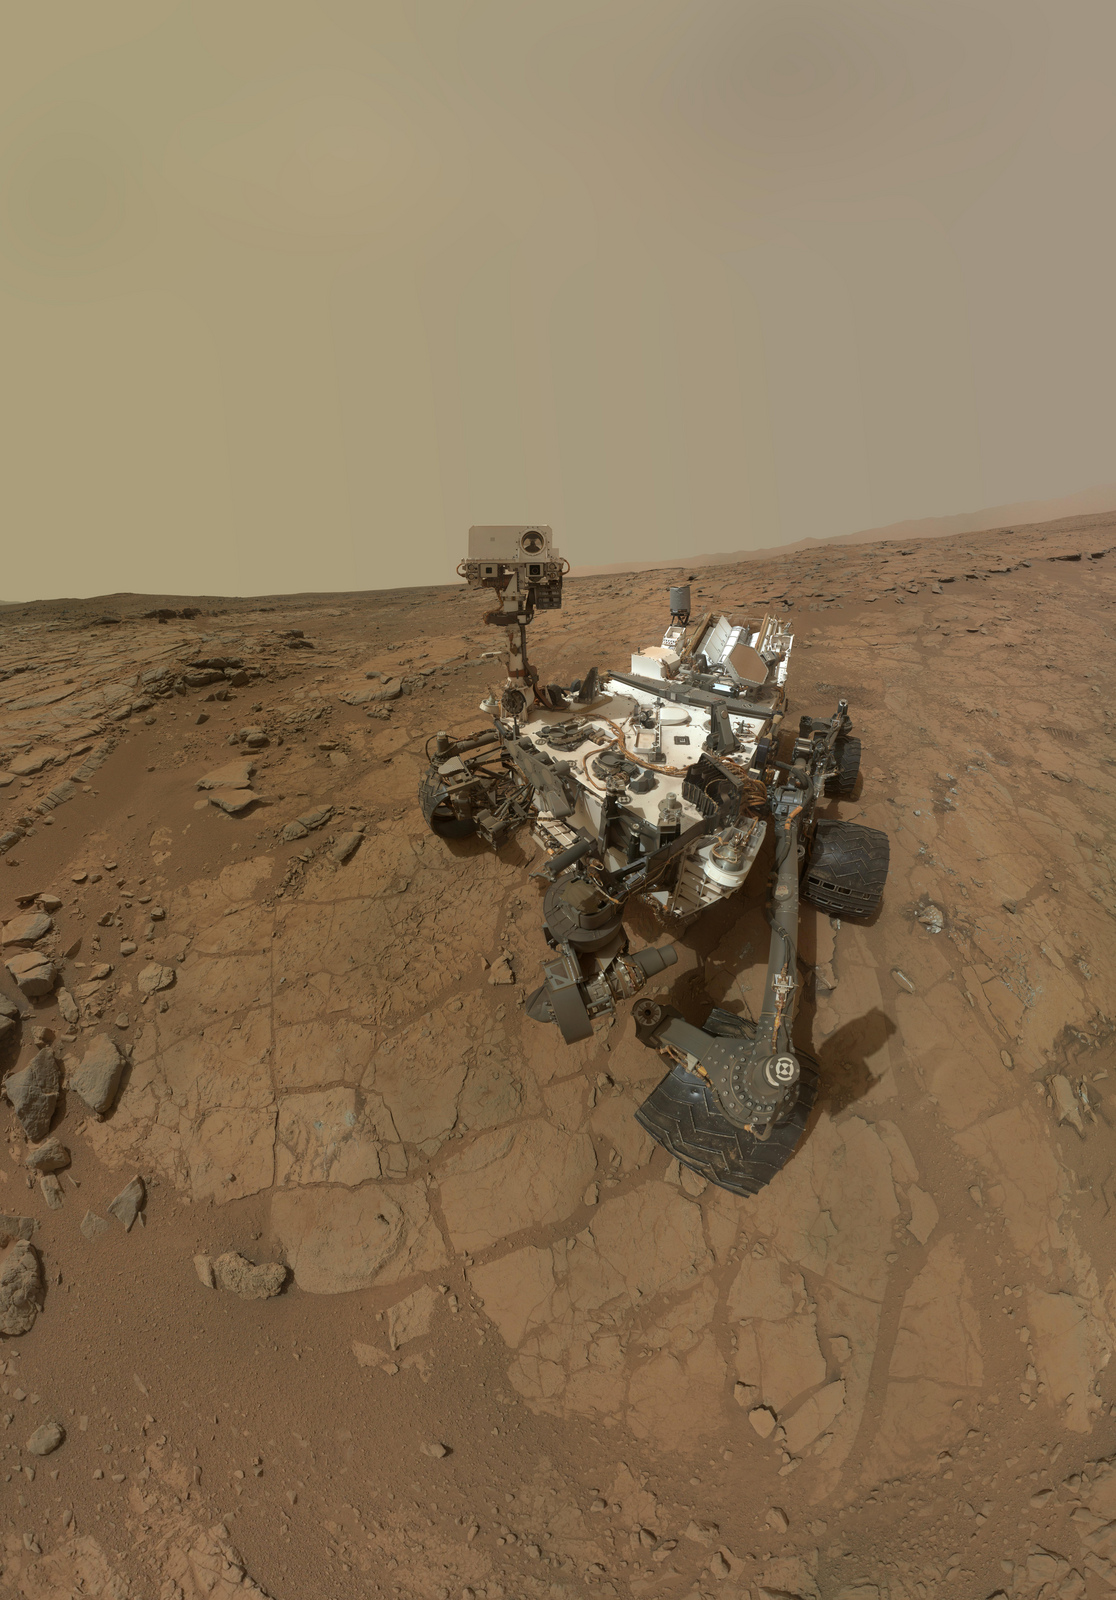 More Ingredients for Life Identified on Mars